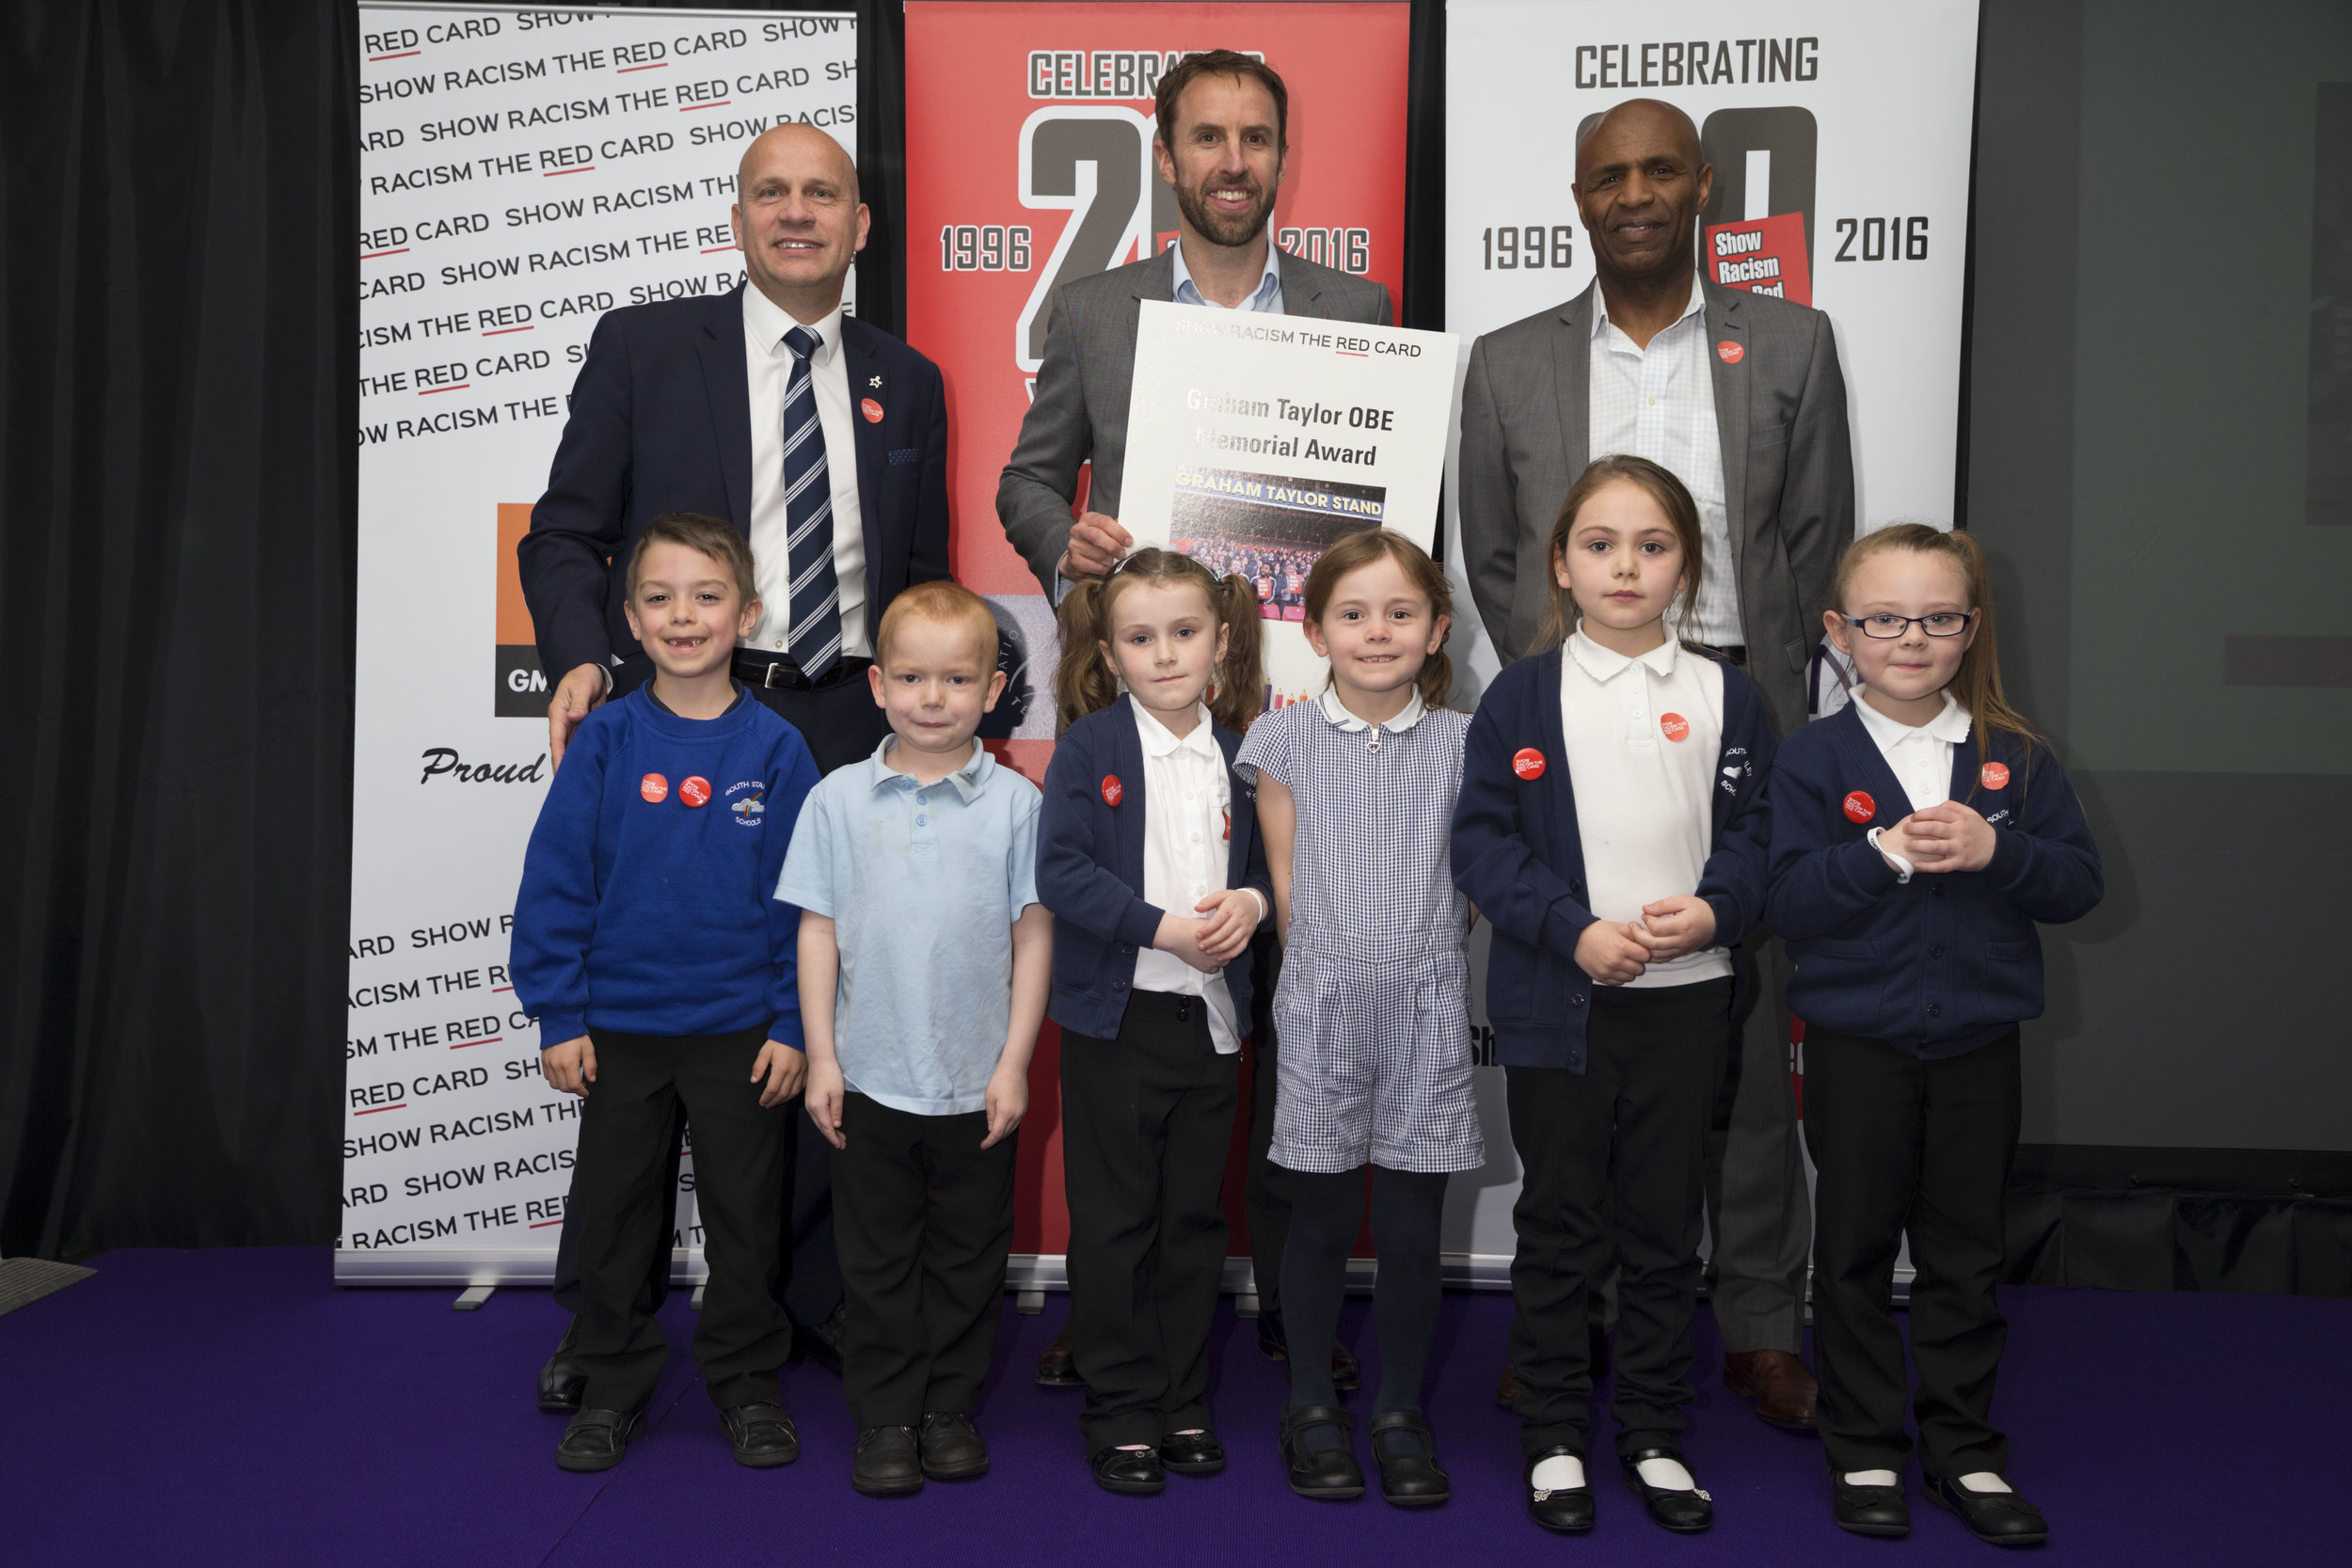 Pupils from South Stanley Infants School winning the first Graham Taylor OBE Memorial Award